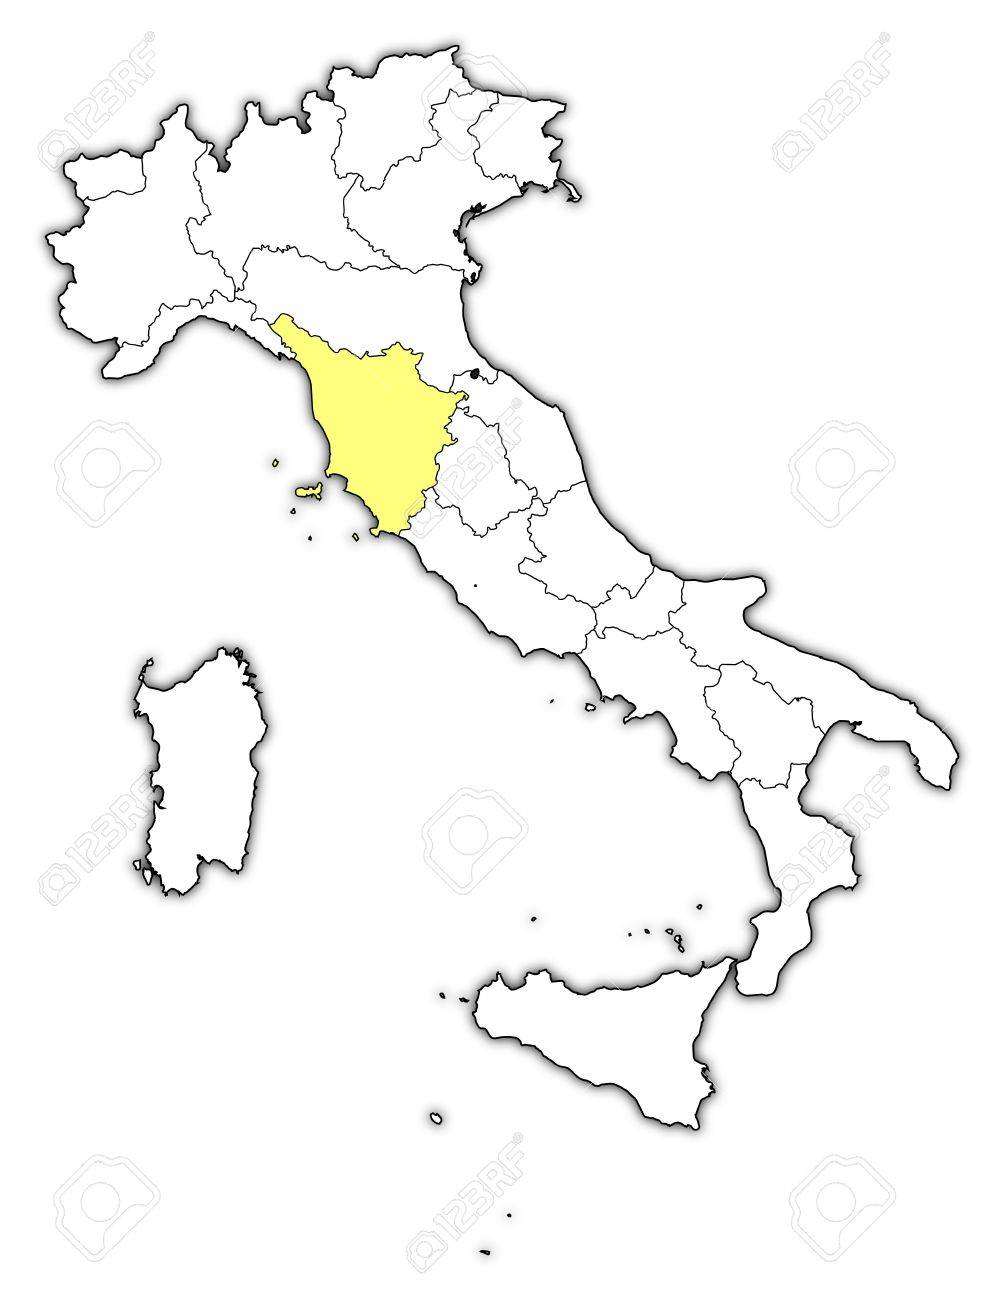 Cartina Italia Vettoriale.Political Map Of Italy With The Several Regions Where Tuscany Royalty Free Cliparts Vectors And Stock Illustration Image 13912624